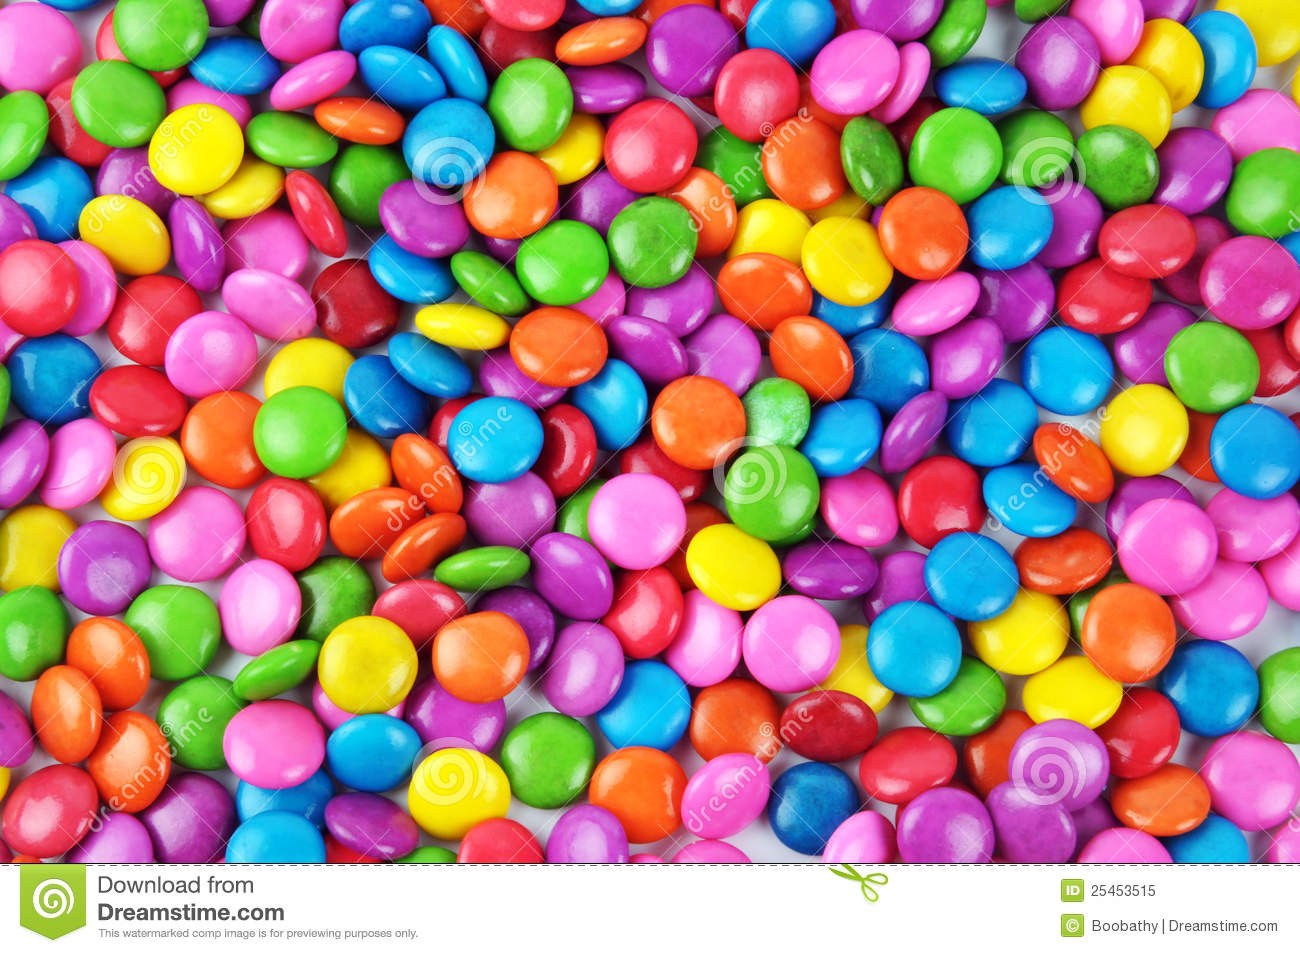 Cute Dental Wallpaper Colorful Candy Royalty Free Stock Photo Image 25453515